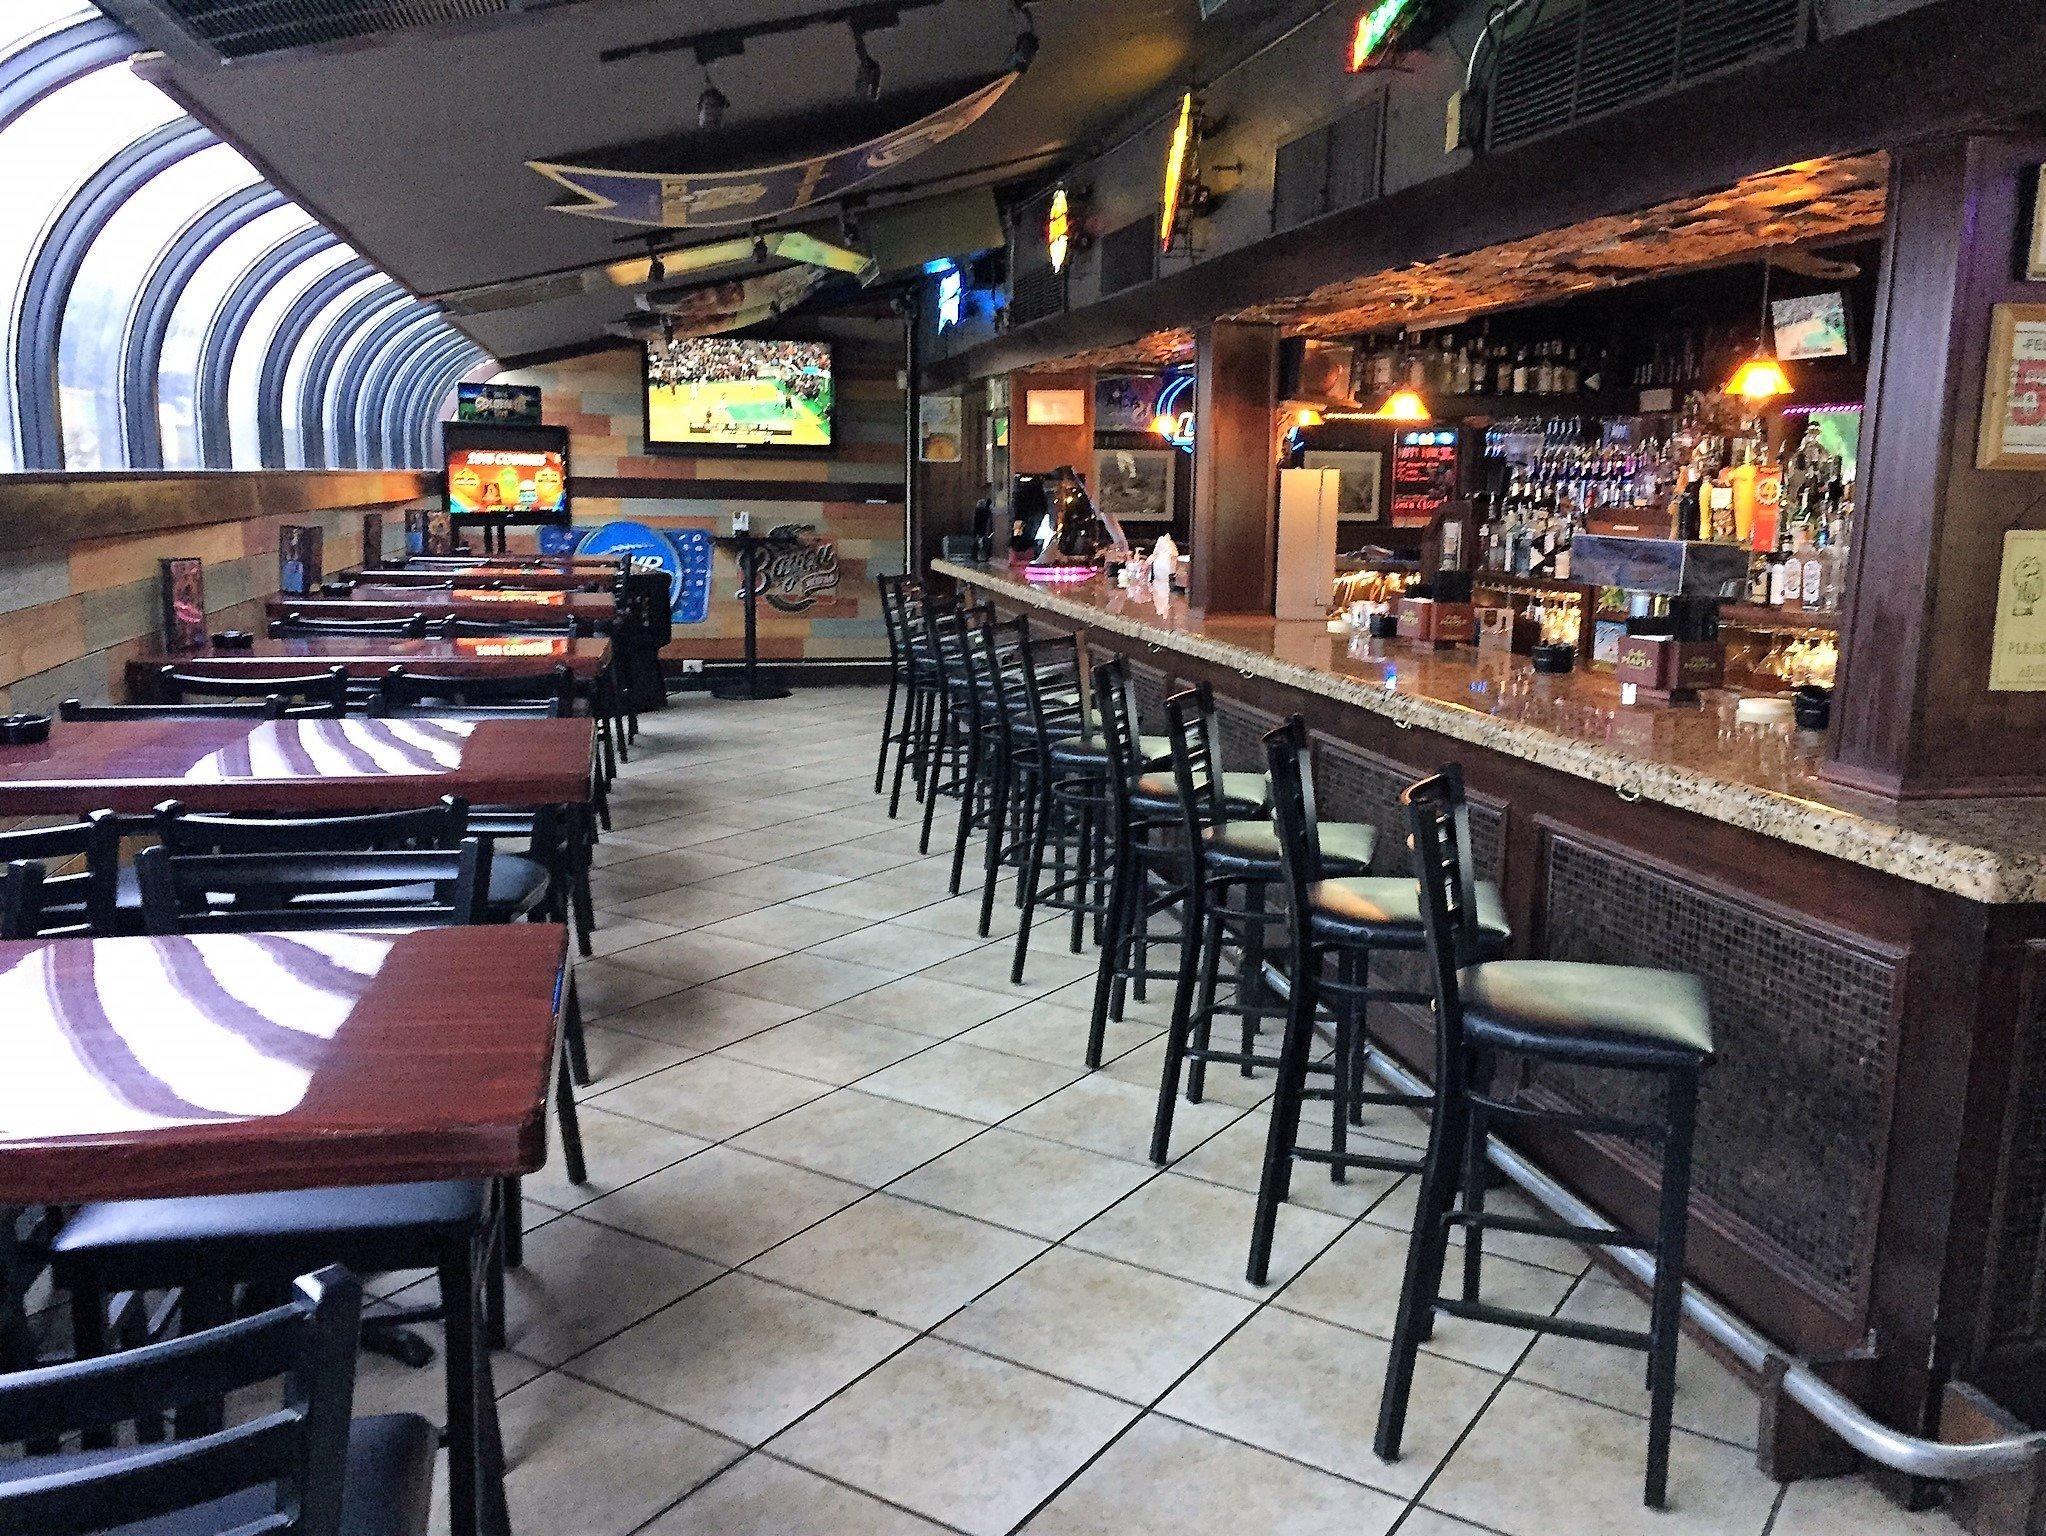 The Quarter Bar & Grill image 39